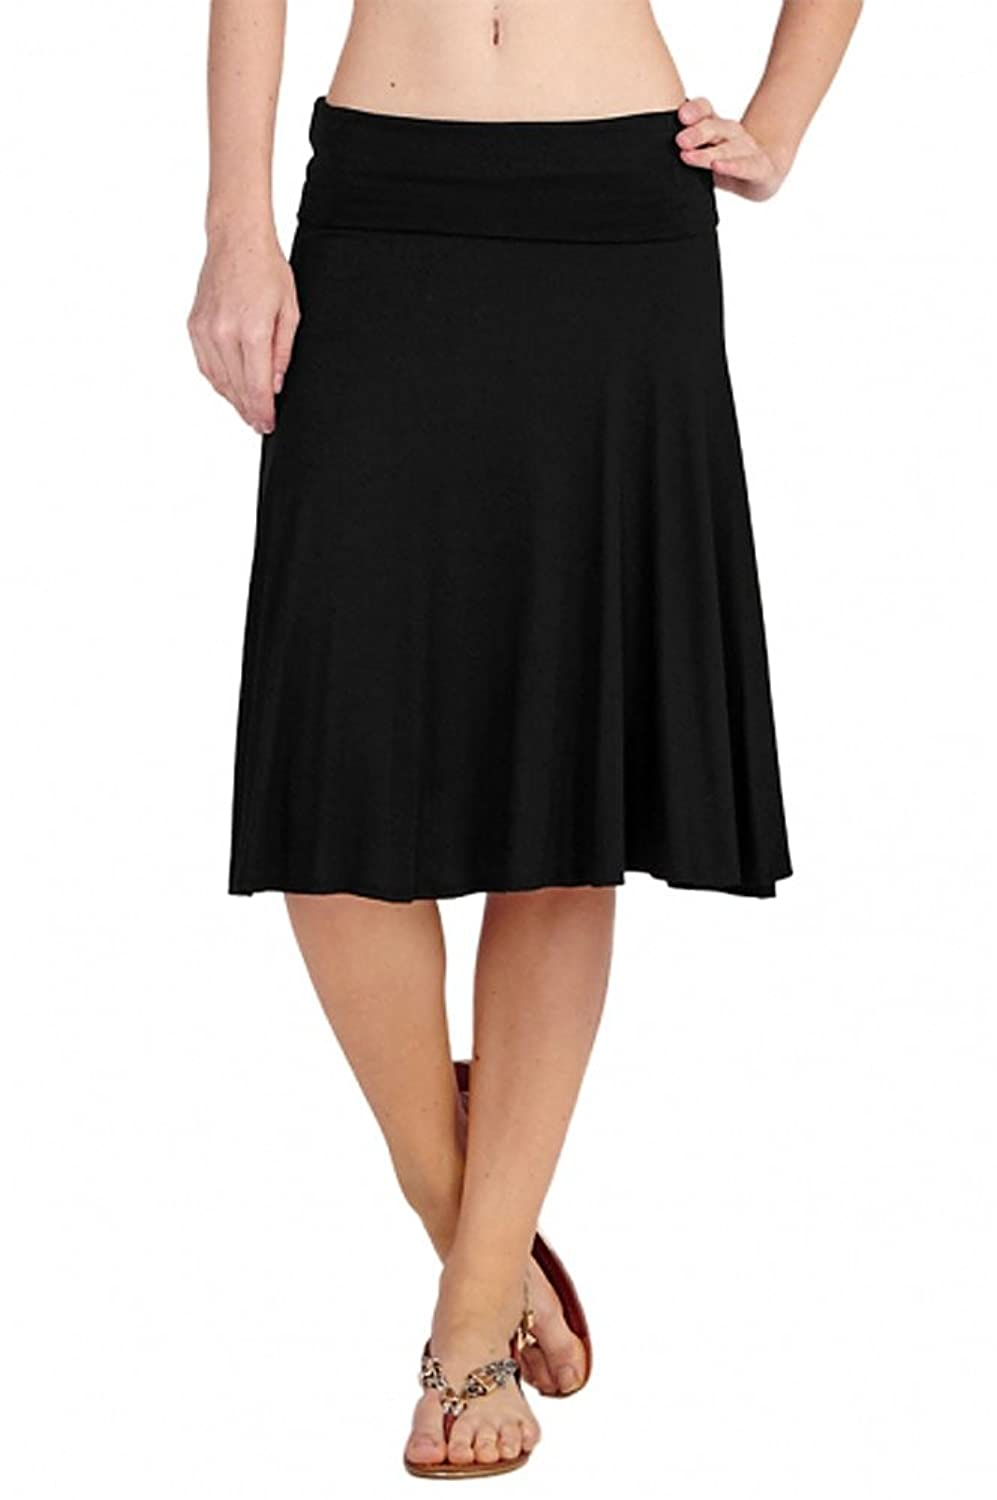 12 Ami Solid Basic Fold-Over Stretch Midi Short Skirt - Made in USA